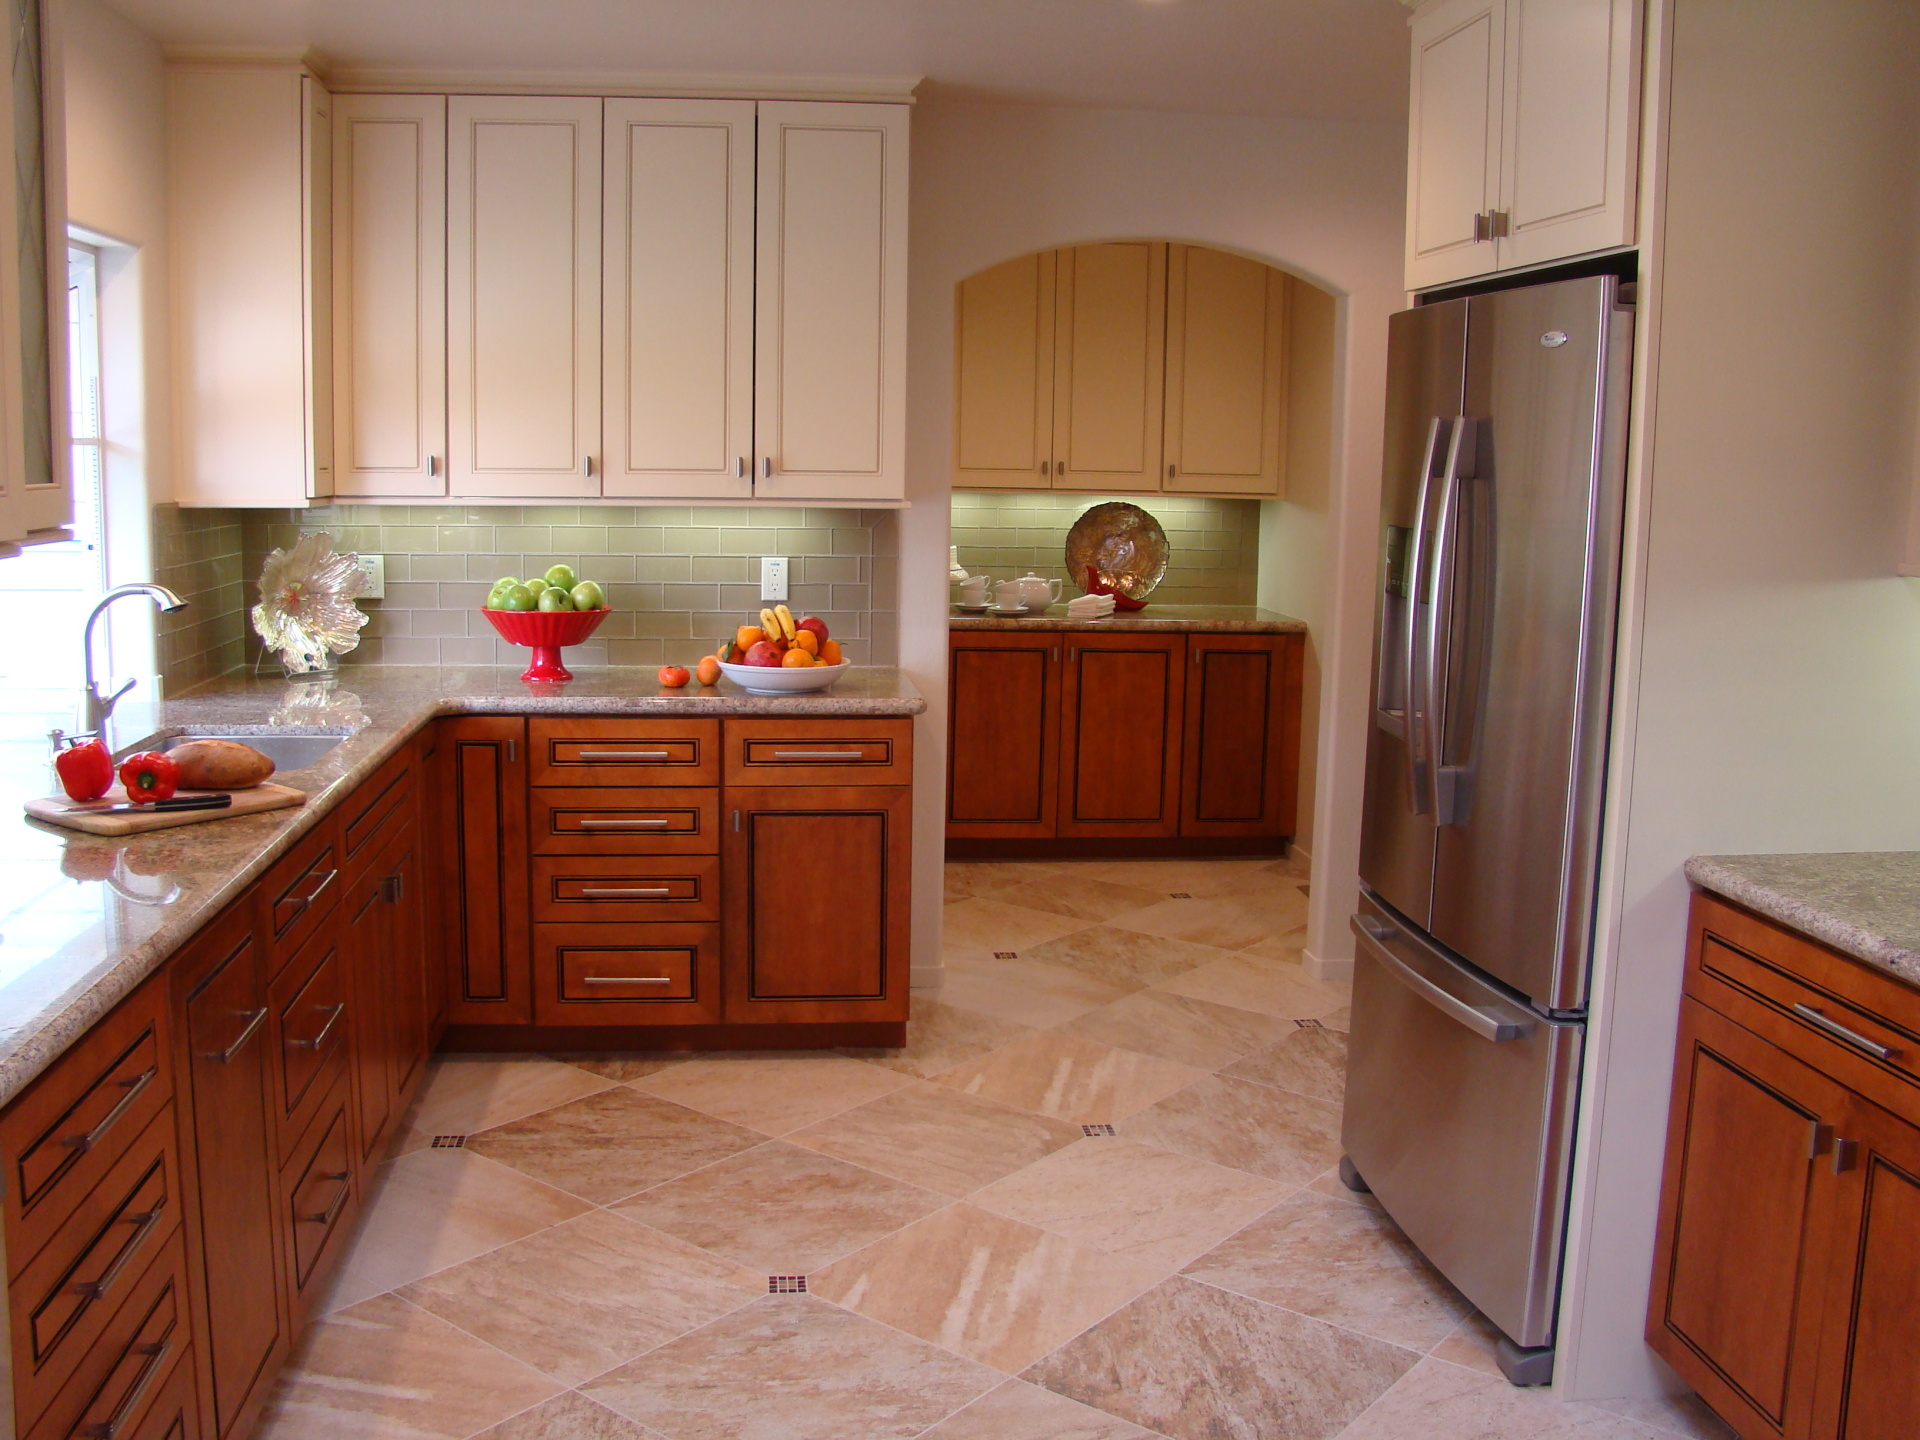 Fiorito Interior Design, interior design, remodel, kitchen, light and dark cabinetry, granite counter, pantry